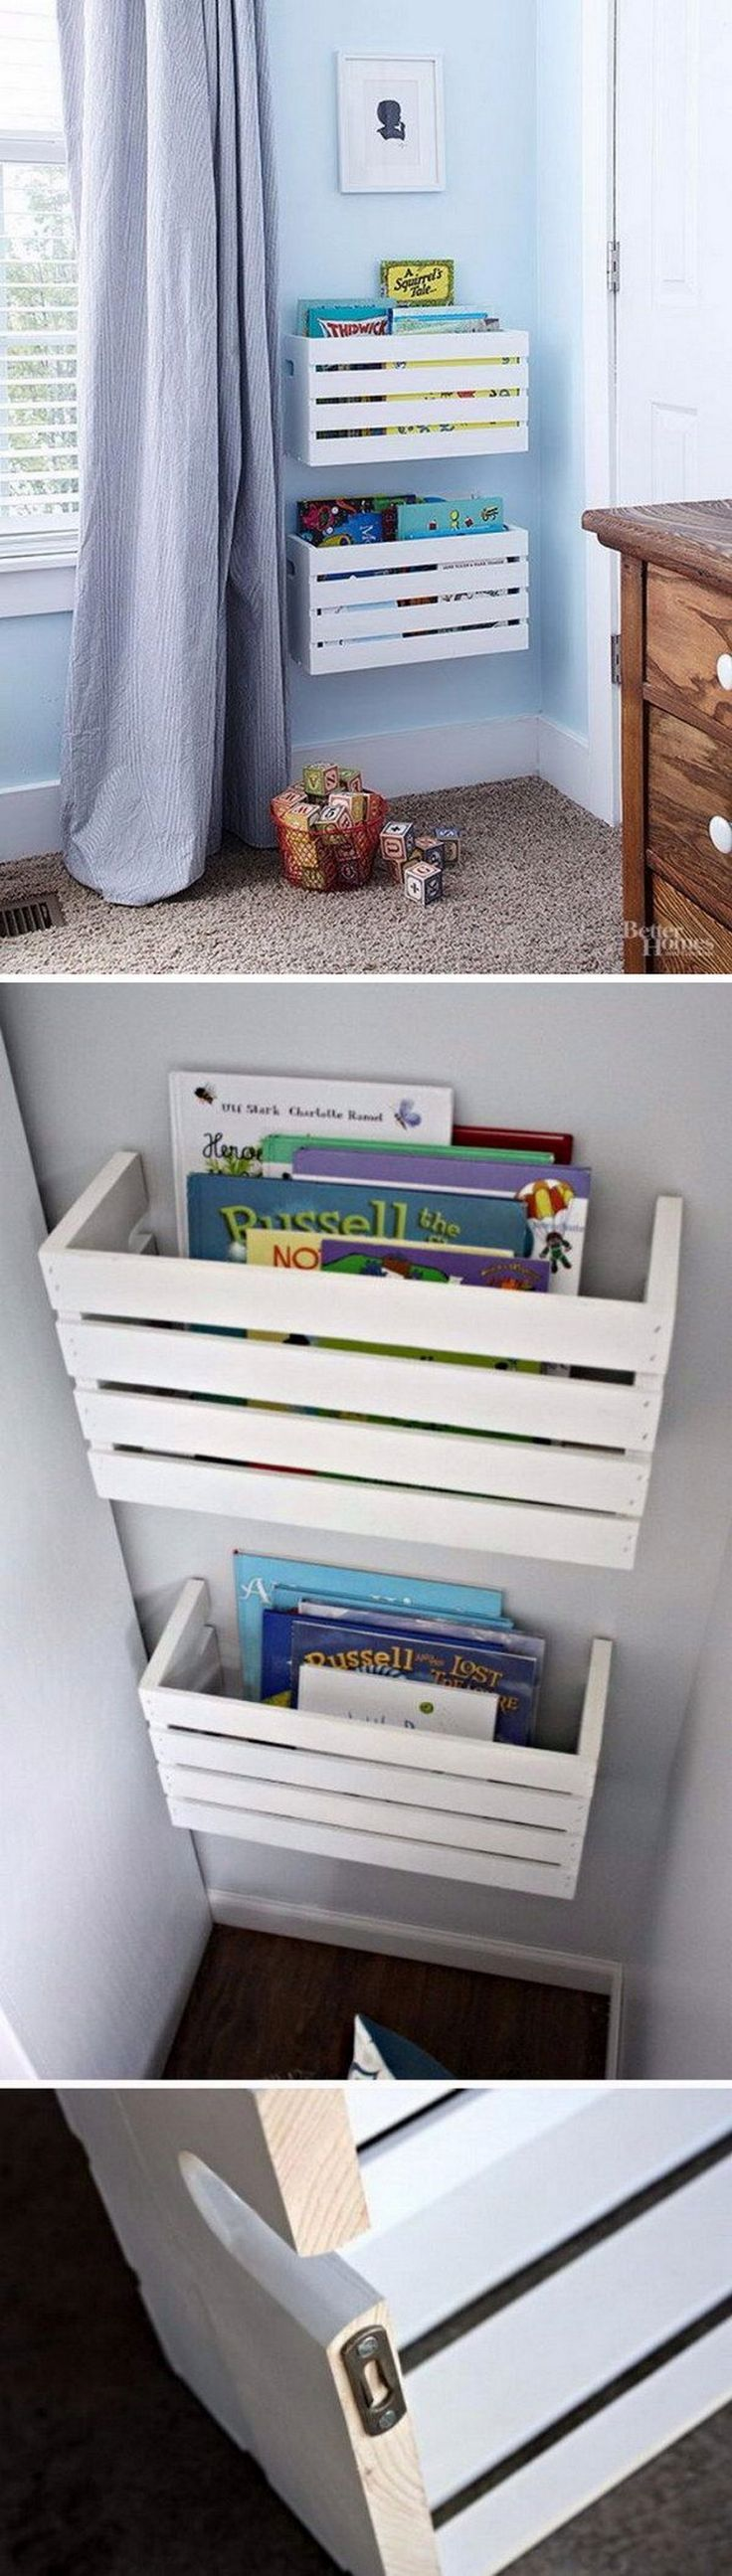 10 creative toy storage tips for your kids - Storage For Small Spaces Rooms